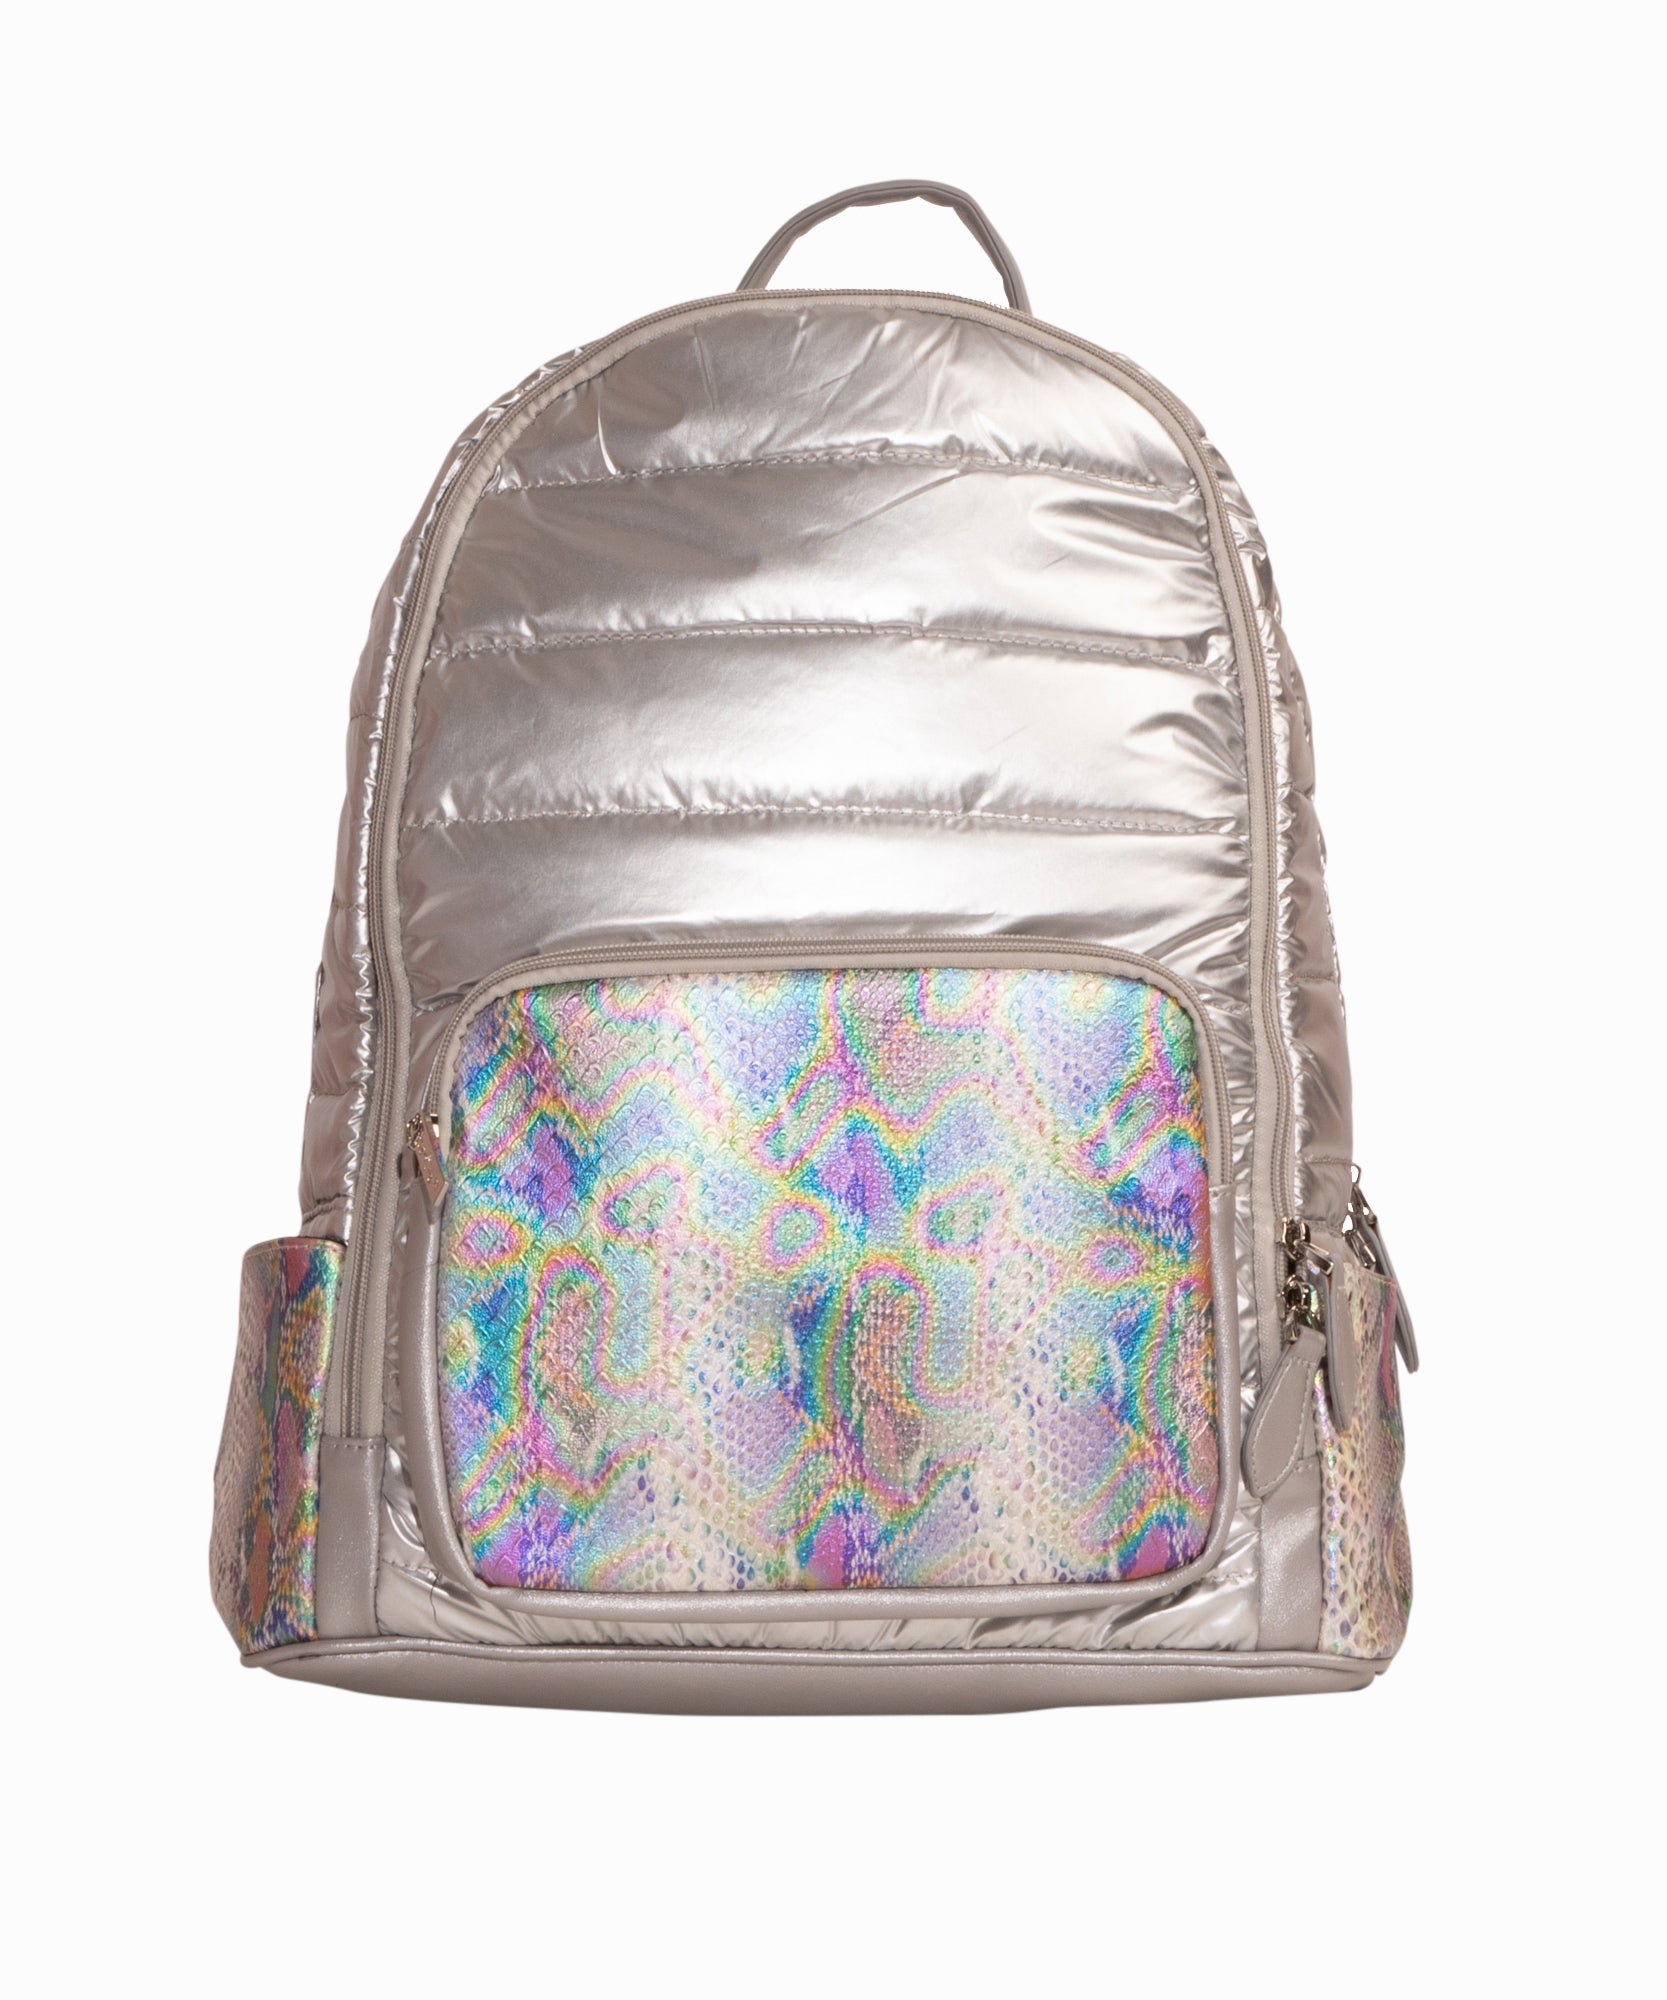 Silver Snake Puffy Backpack